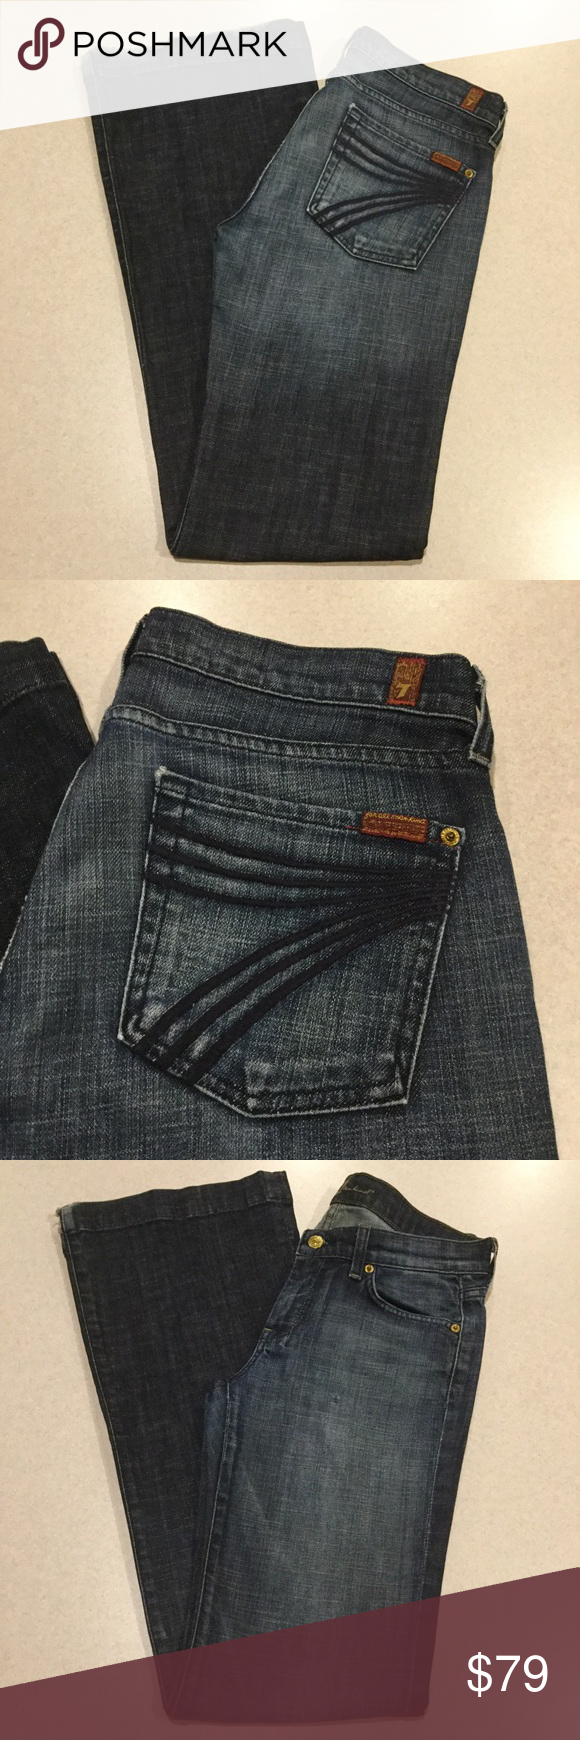 7 For All Mankind Jeans 30X34.5 Dojo In Broadway! ❗️PRICE ABSOLUTELY FIRM❗️ 7 for all mankind jeans Size 30 34.5 inch long inseam (hard to find) The dojo in Broadway Famous blue stitched 7 back pockets Dark heather blue stretch denim with medium fading and distressing Great preowned condition, no flaws except some wear on heals as shown Retailed for $198.00 My dojos sell fast so don't wait on these!  All of my items come from a smoke free, pet free home and are authenticity guaranteed…